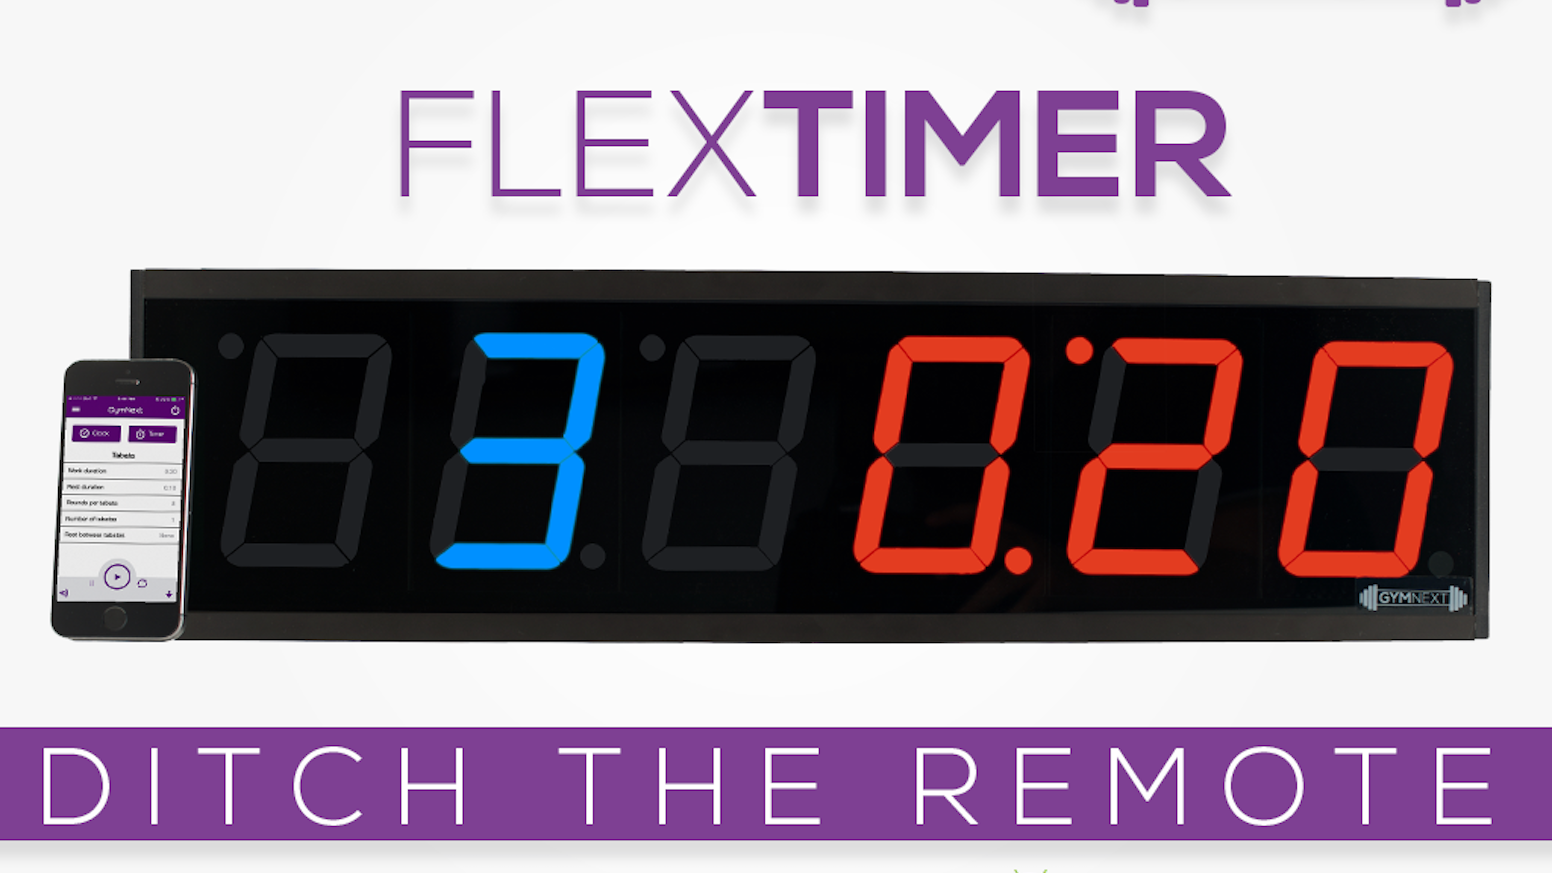 flex timer bluetooth enabled interval training wall clock by duane